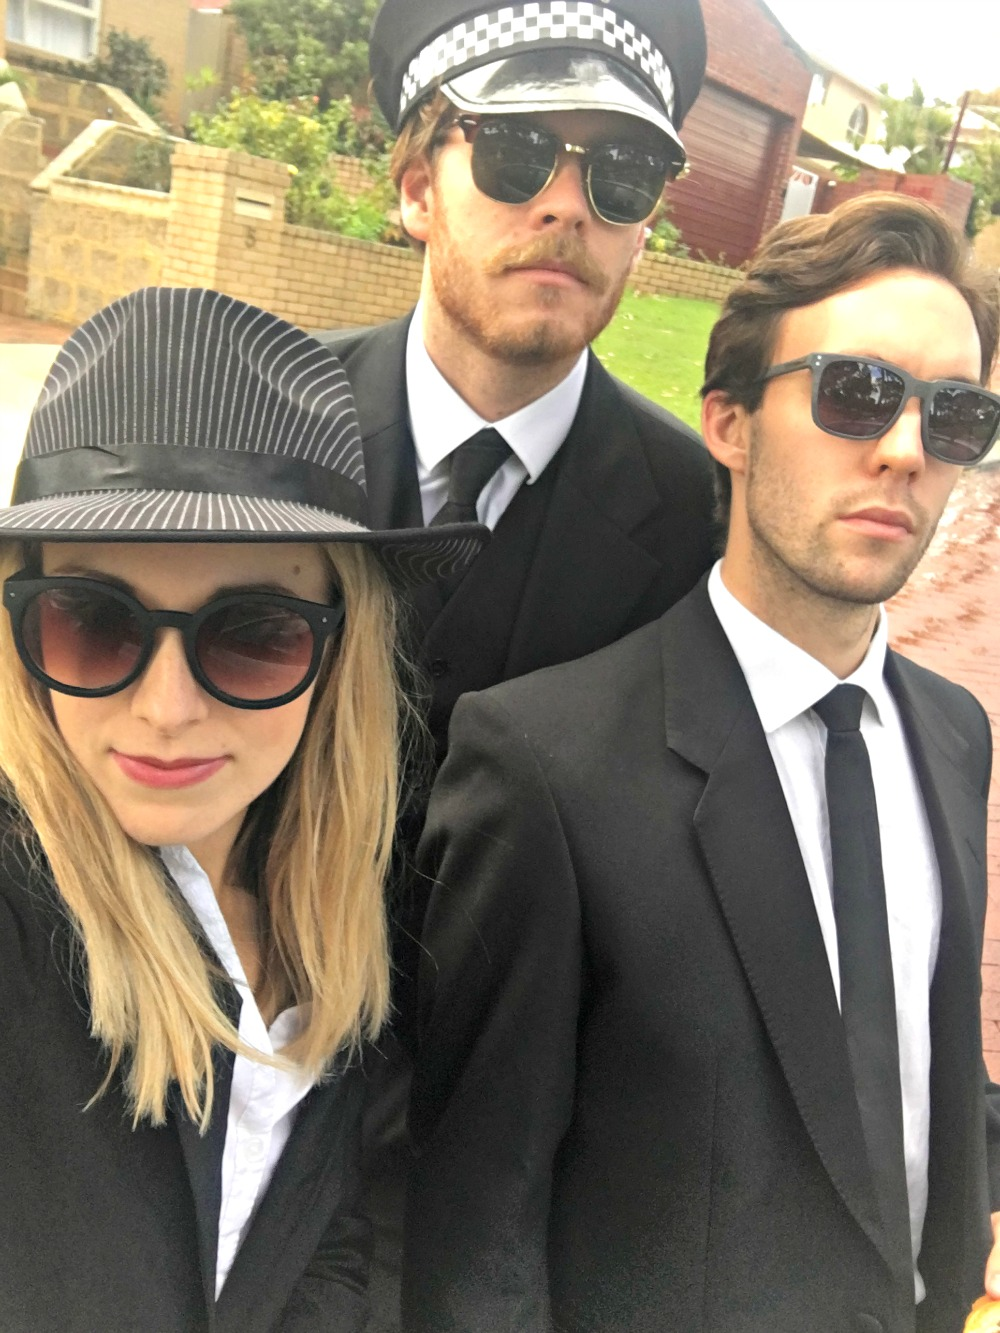 Coolest Spy Detective Birthday Party In Perth Encore Kids